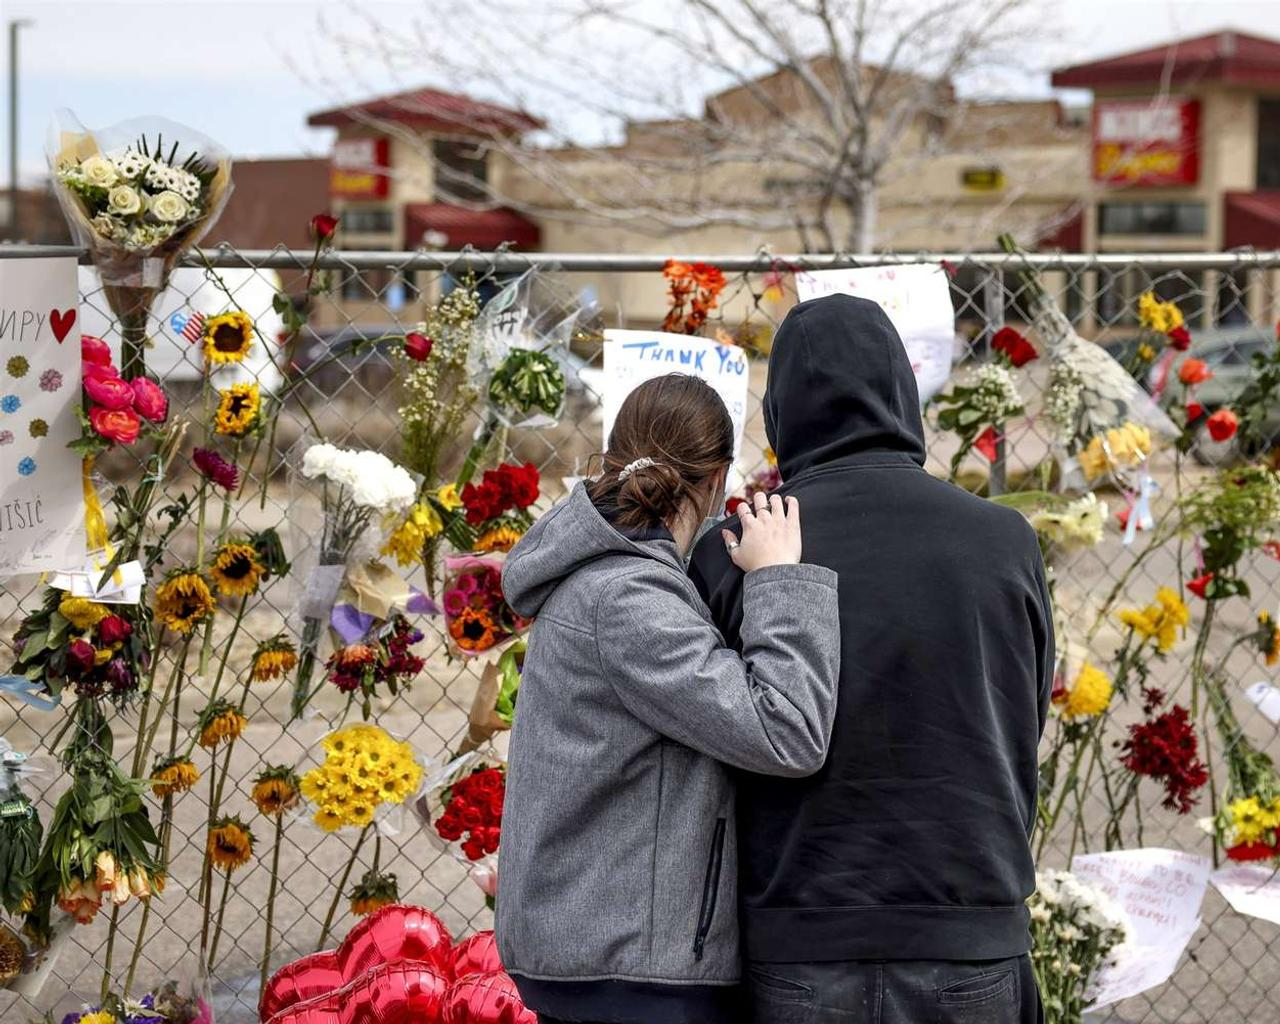 Mass shootings in the United States in 2021 in a public place